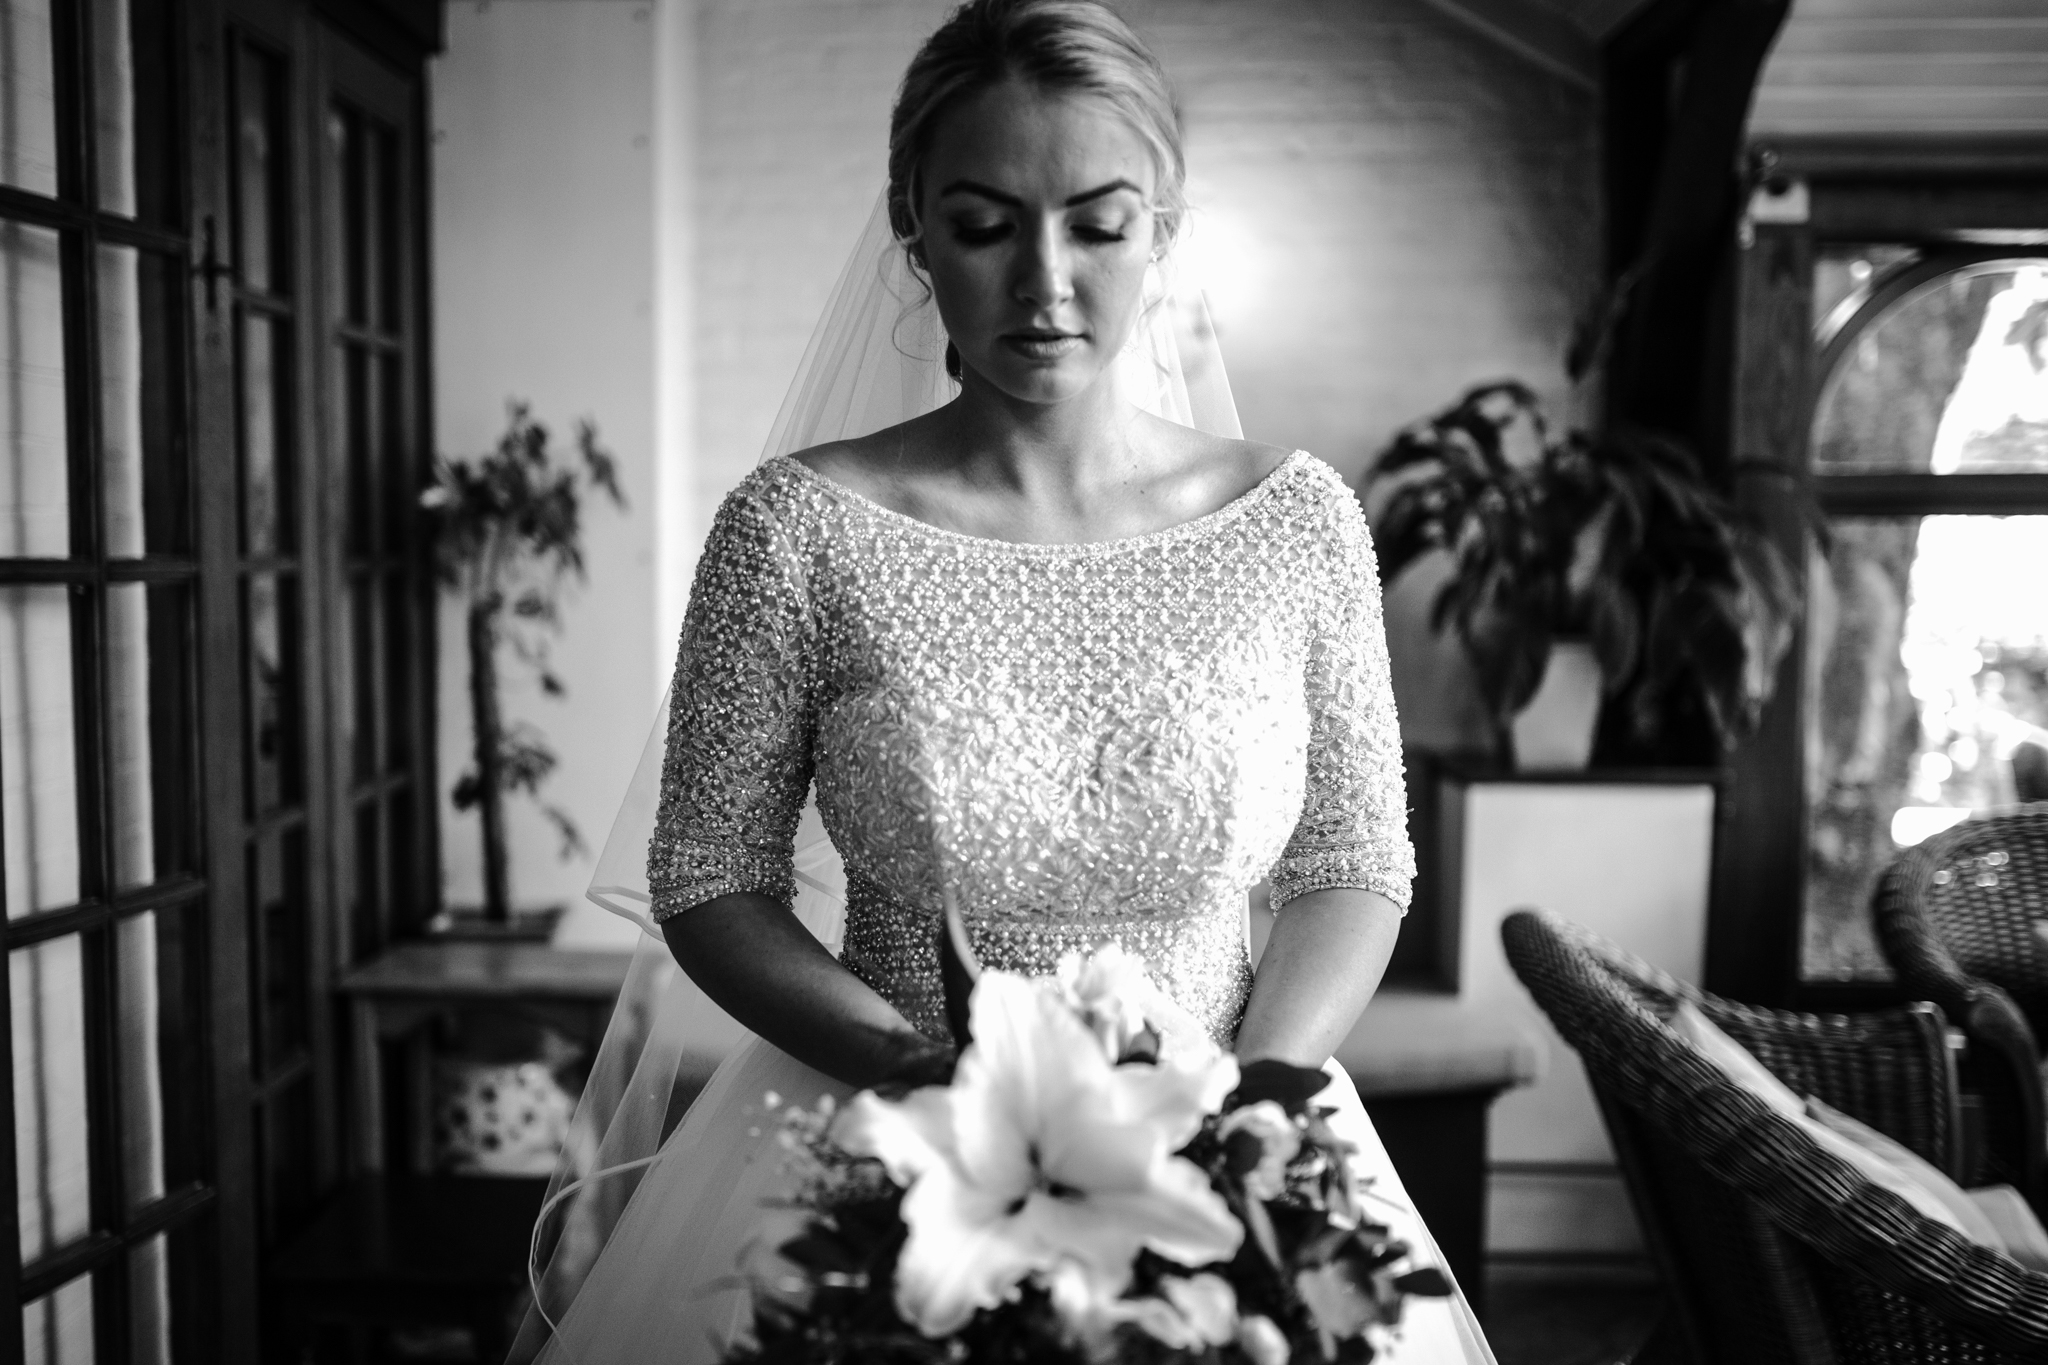 A black and white portrait of a bride and her flowers before the wedding